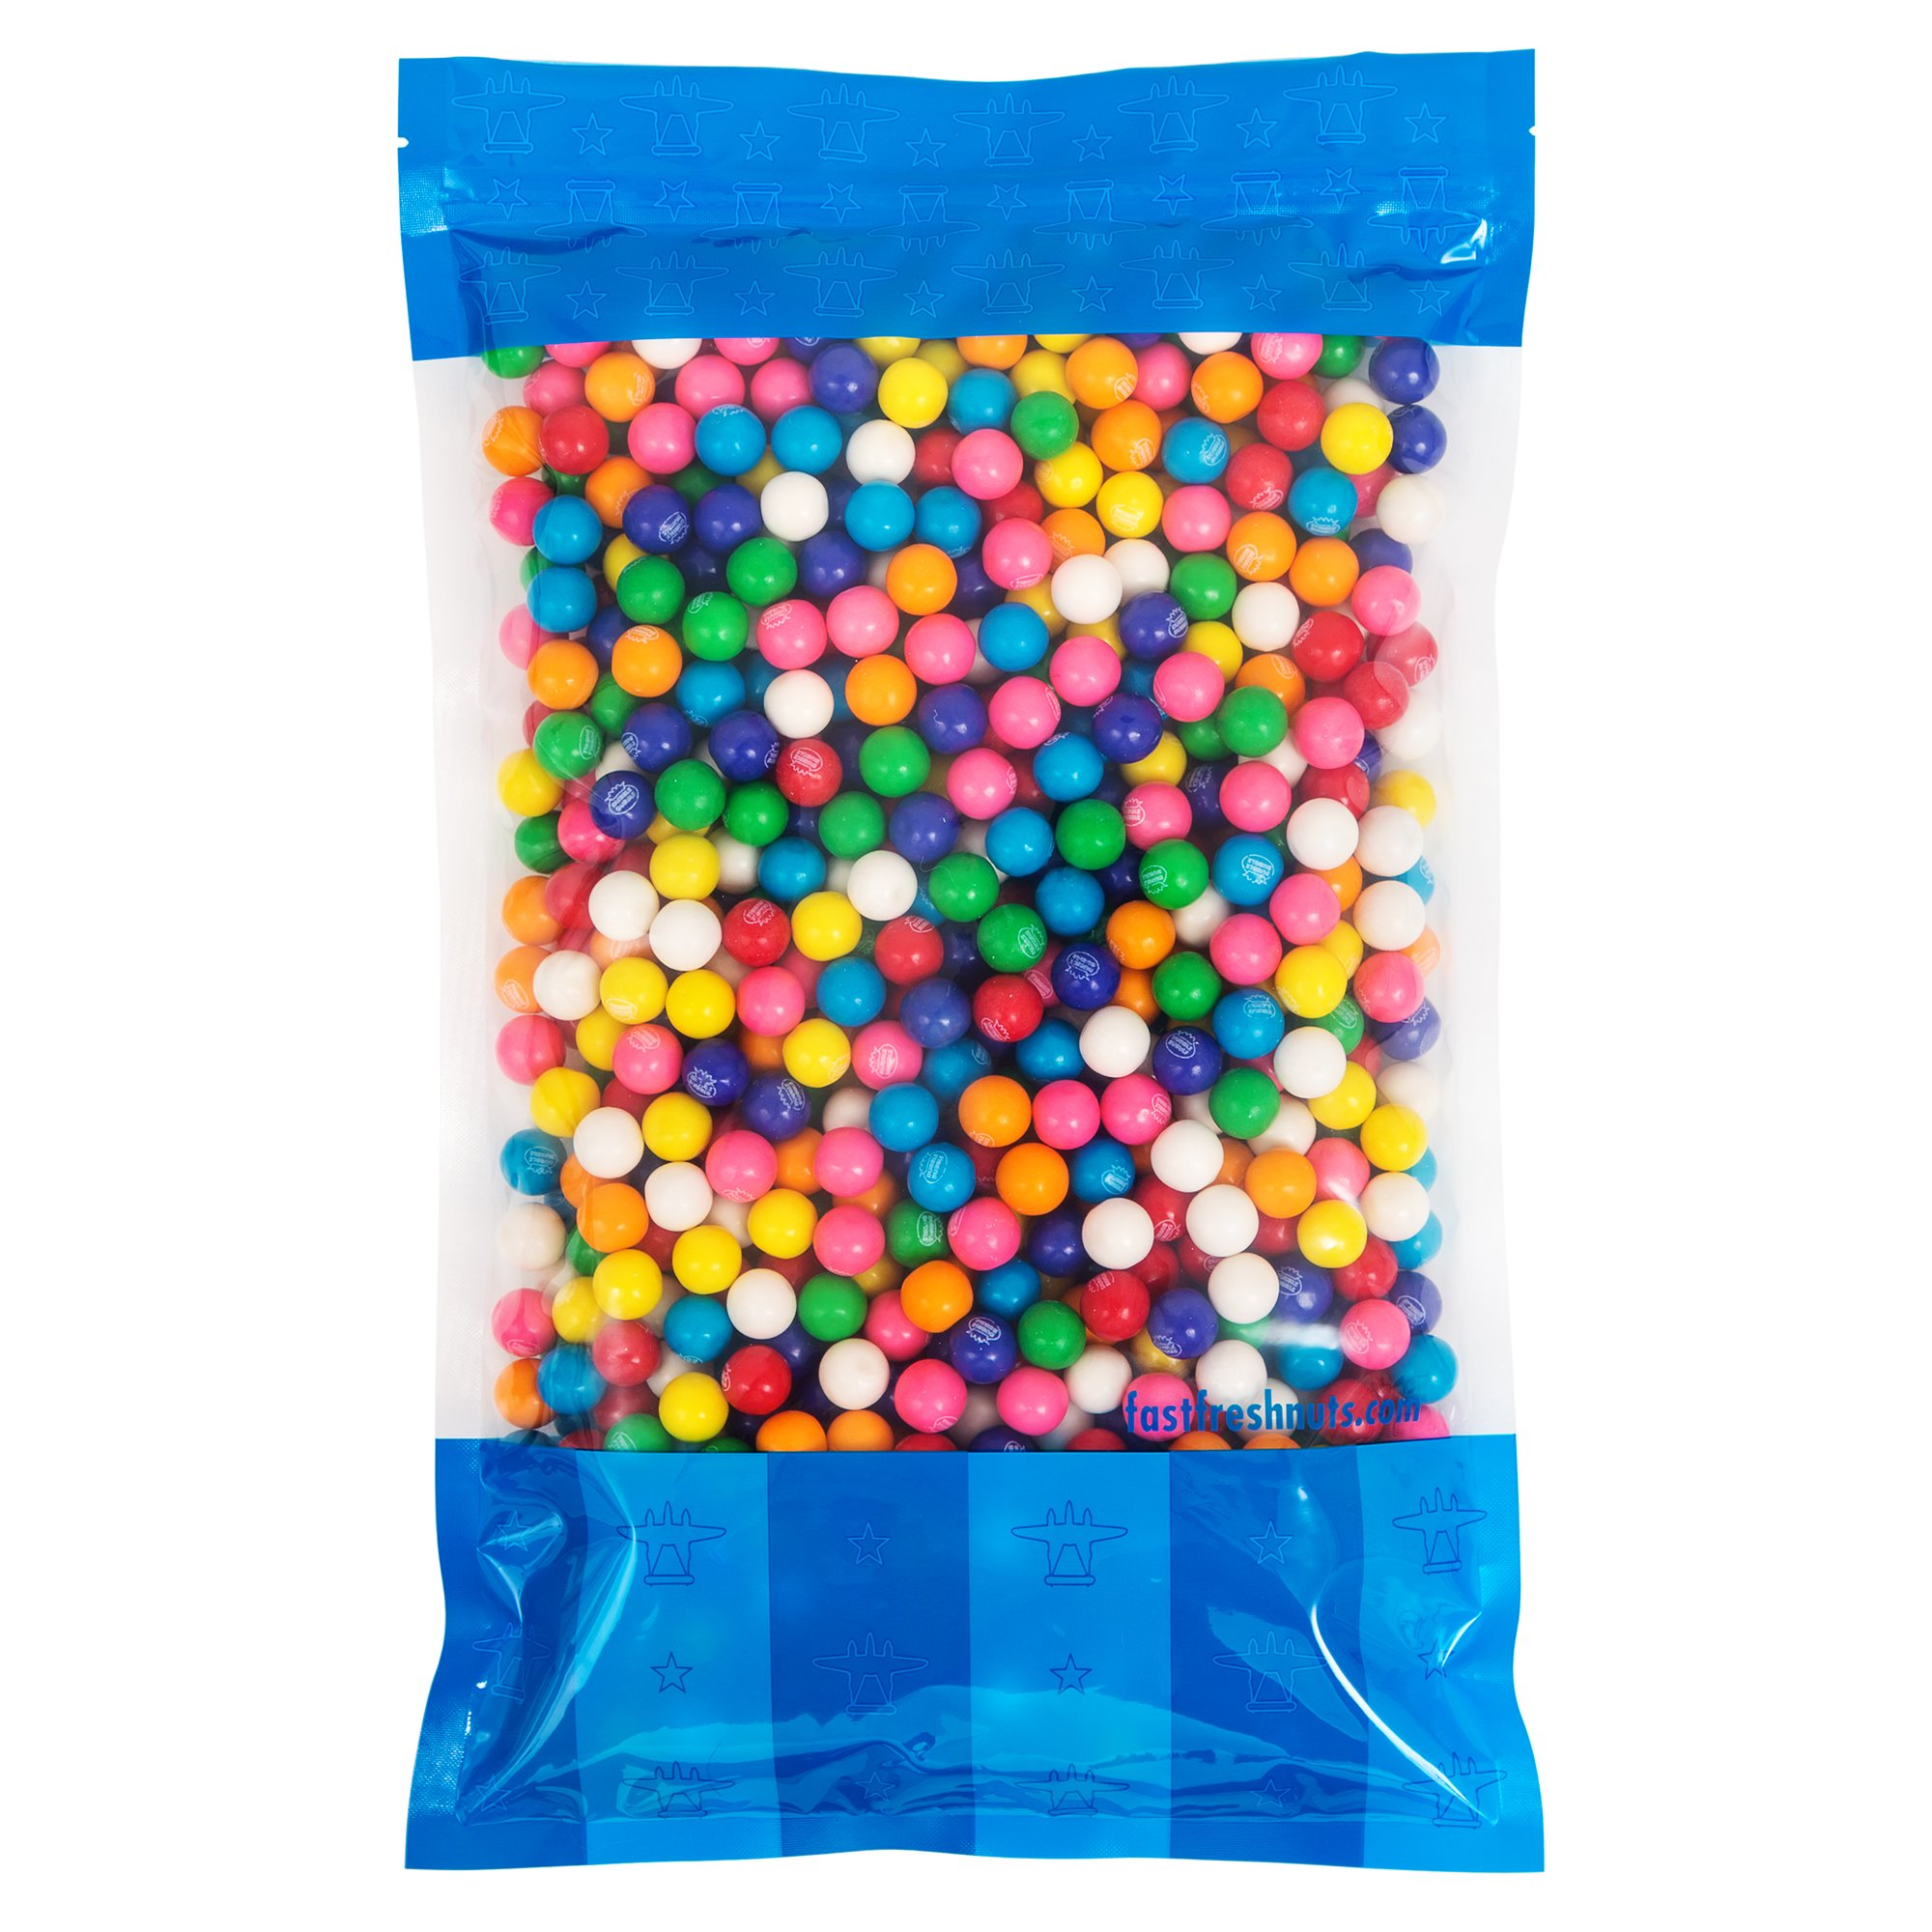 Bulk Mini Dubble Bubble Gumballs - 5 lbs in a Resealable Bomber Bag - Great for Vending Machine Refills - Wholesale - Parties by Fast Fresh Nuts